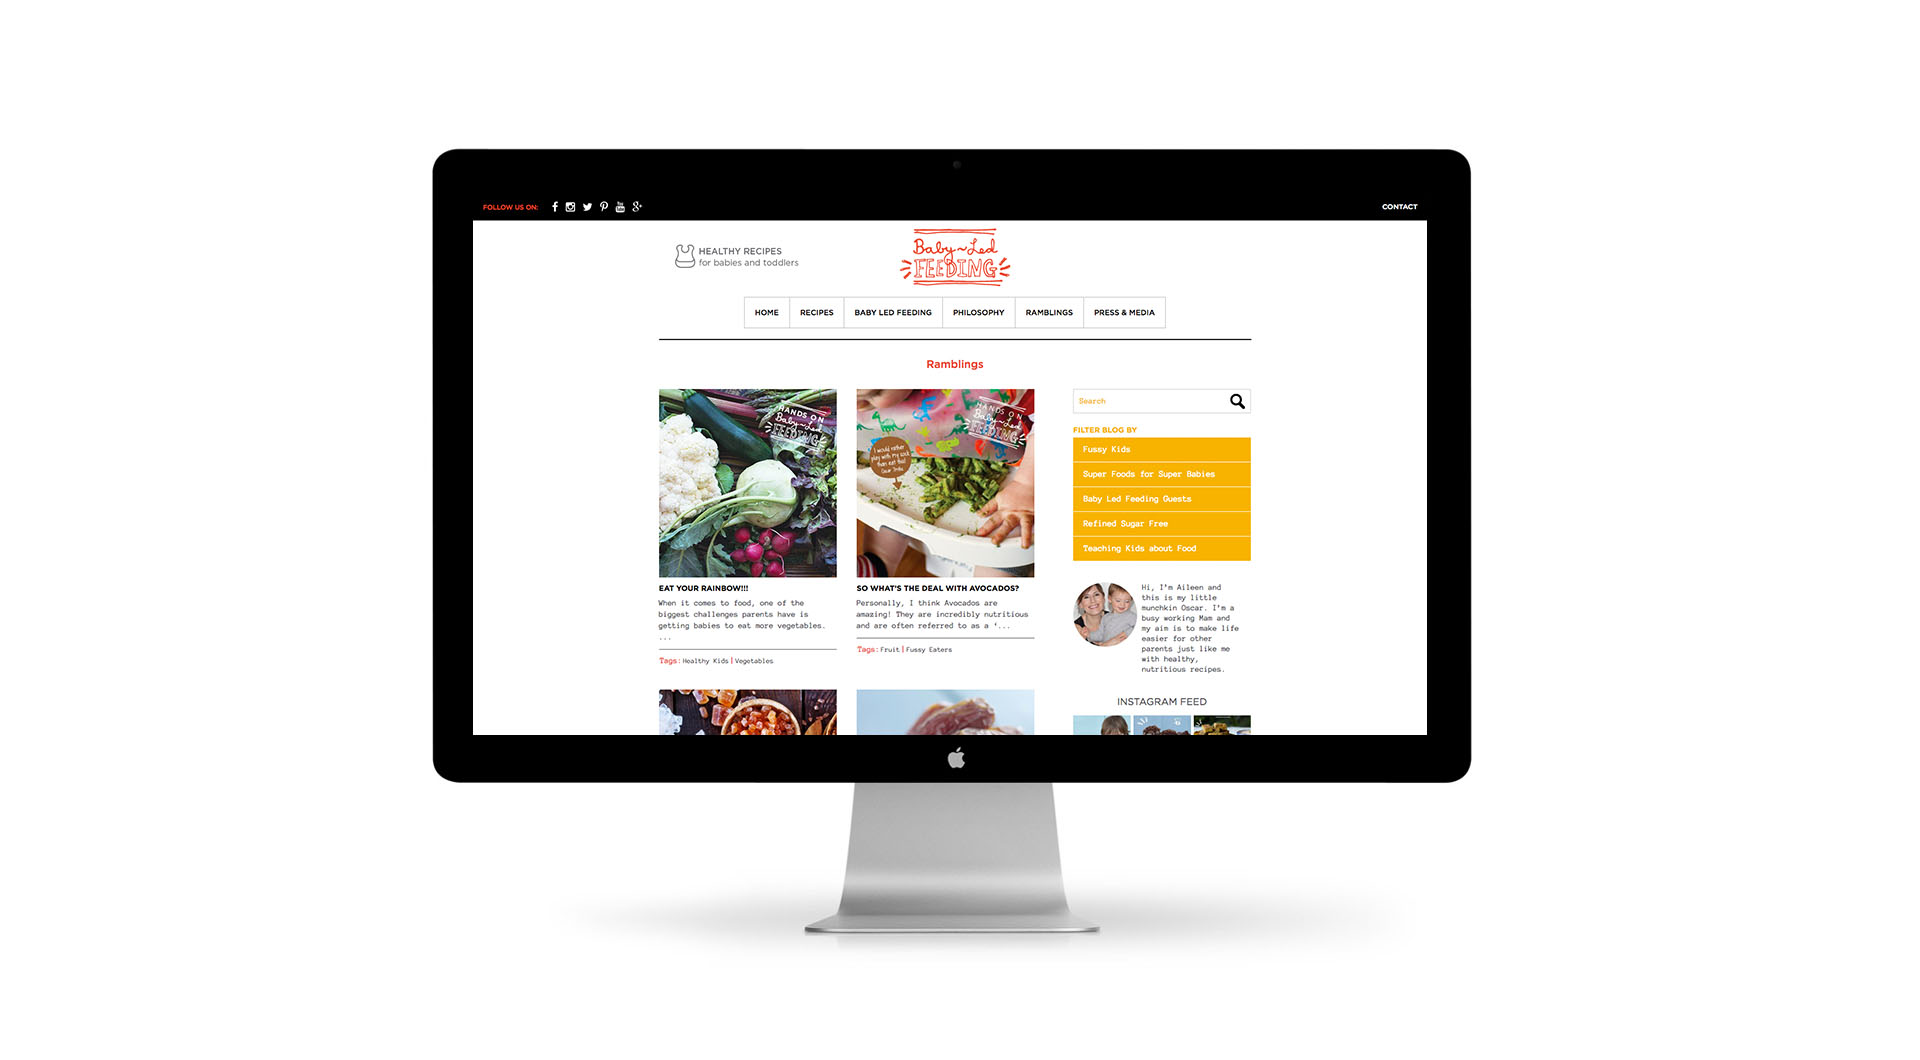 Baby Led Feeding Branding and website for new food startup Irish company Ramblings.